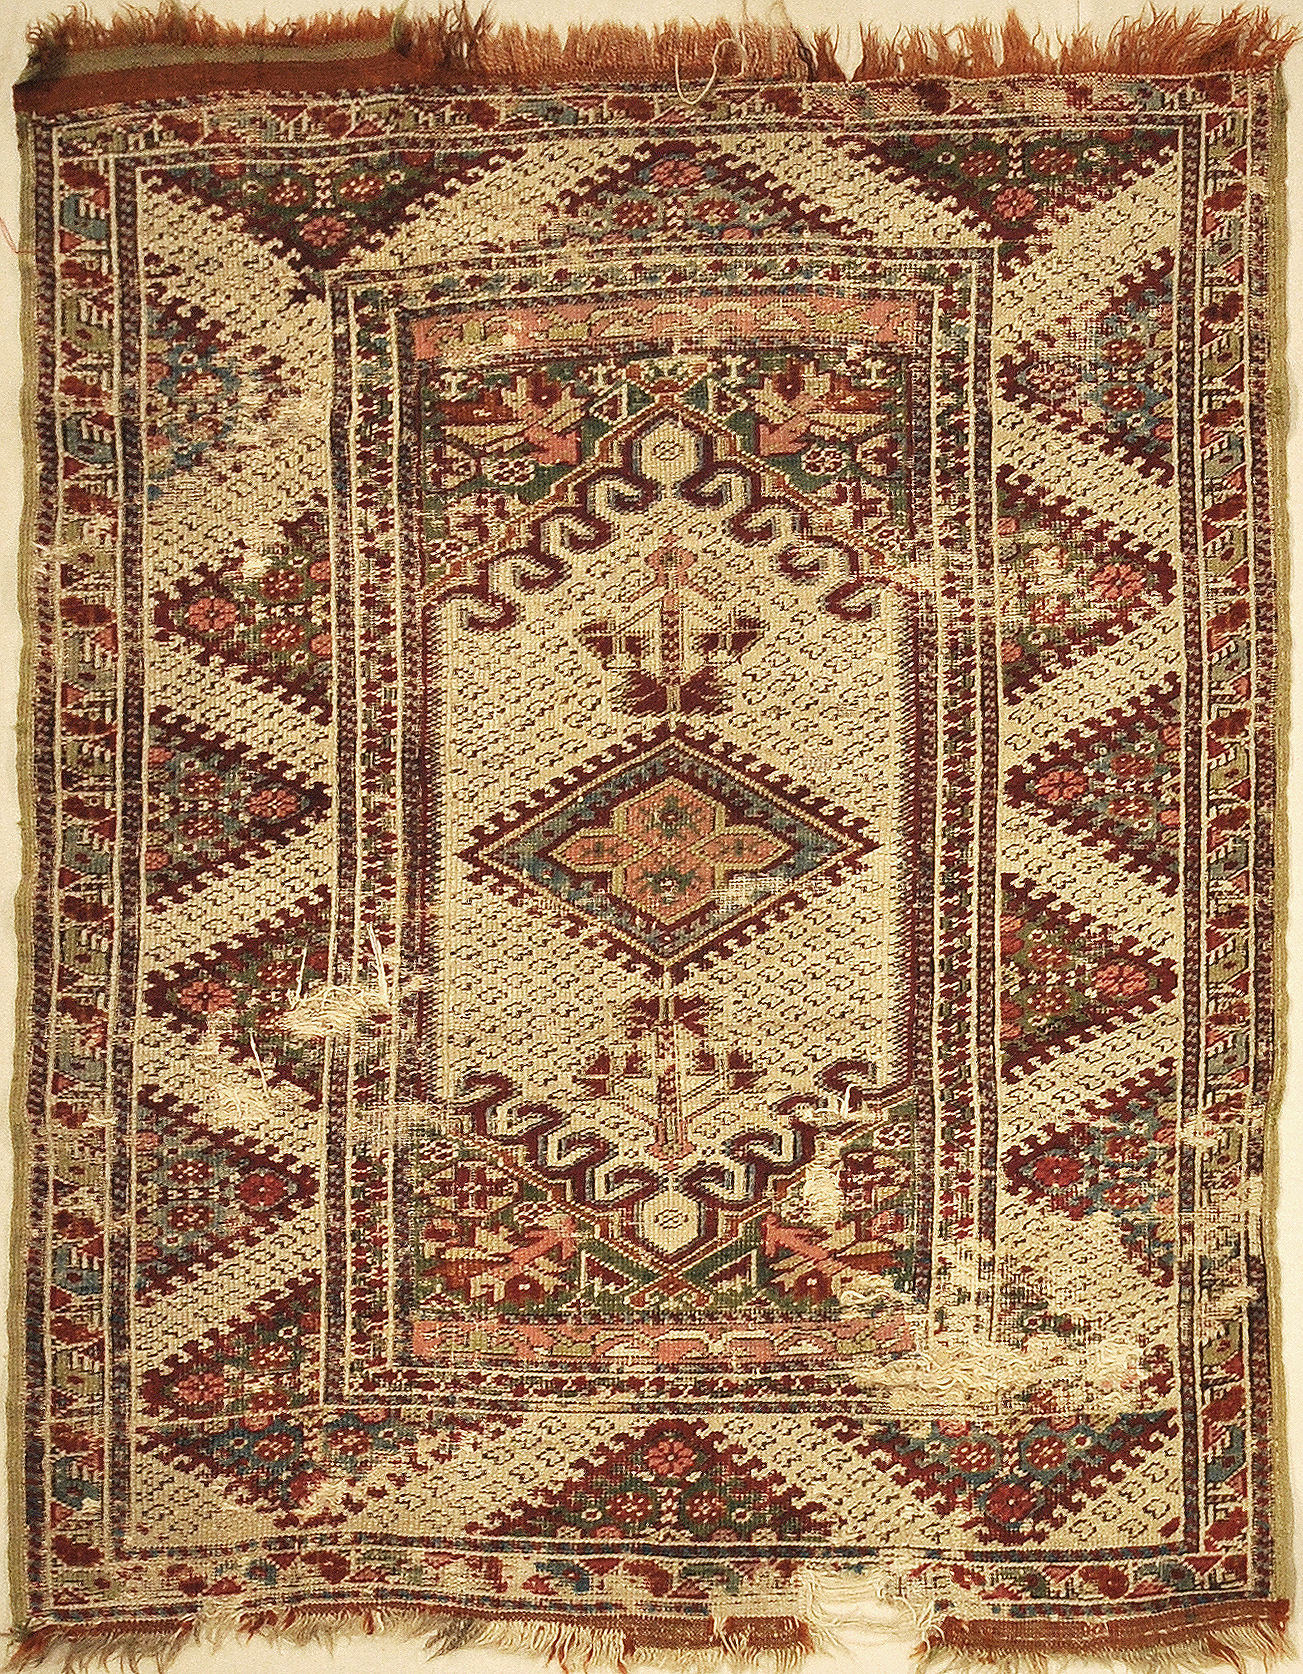 Antique Ghiordes Rug Circa 17th Century. A piece of genuine authentic antique woven carpet art sold by the Santa Barbara Design Center, Rugs and More.